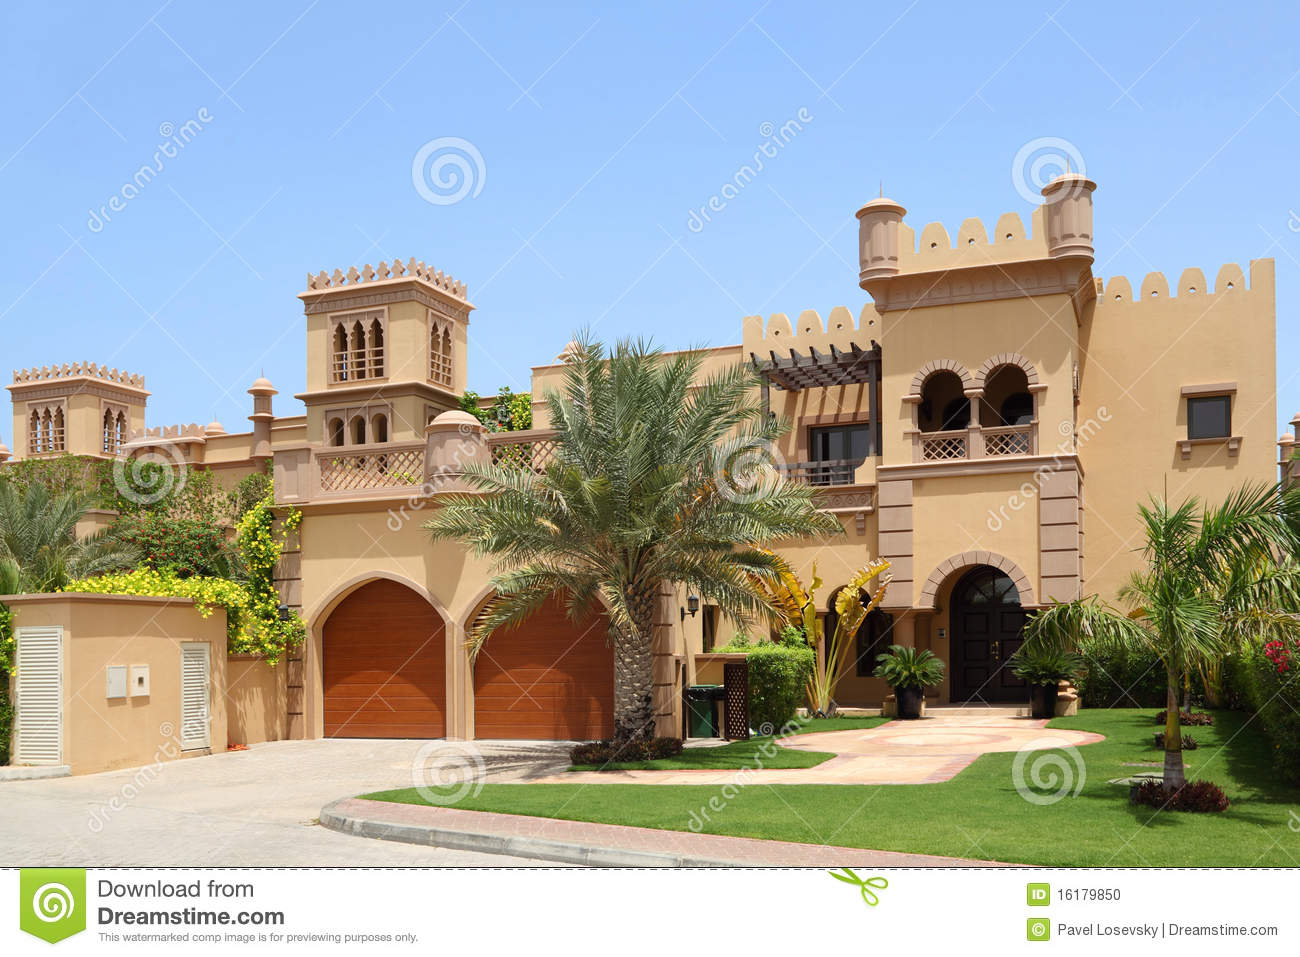 Arabian Style House With Two Garages And Archs Stock Photo